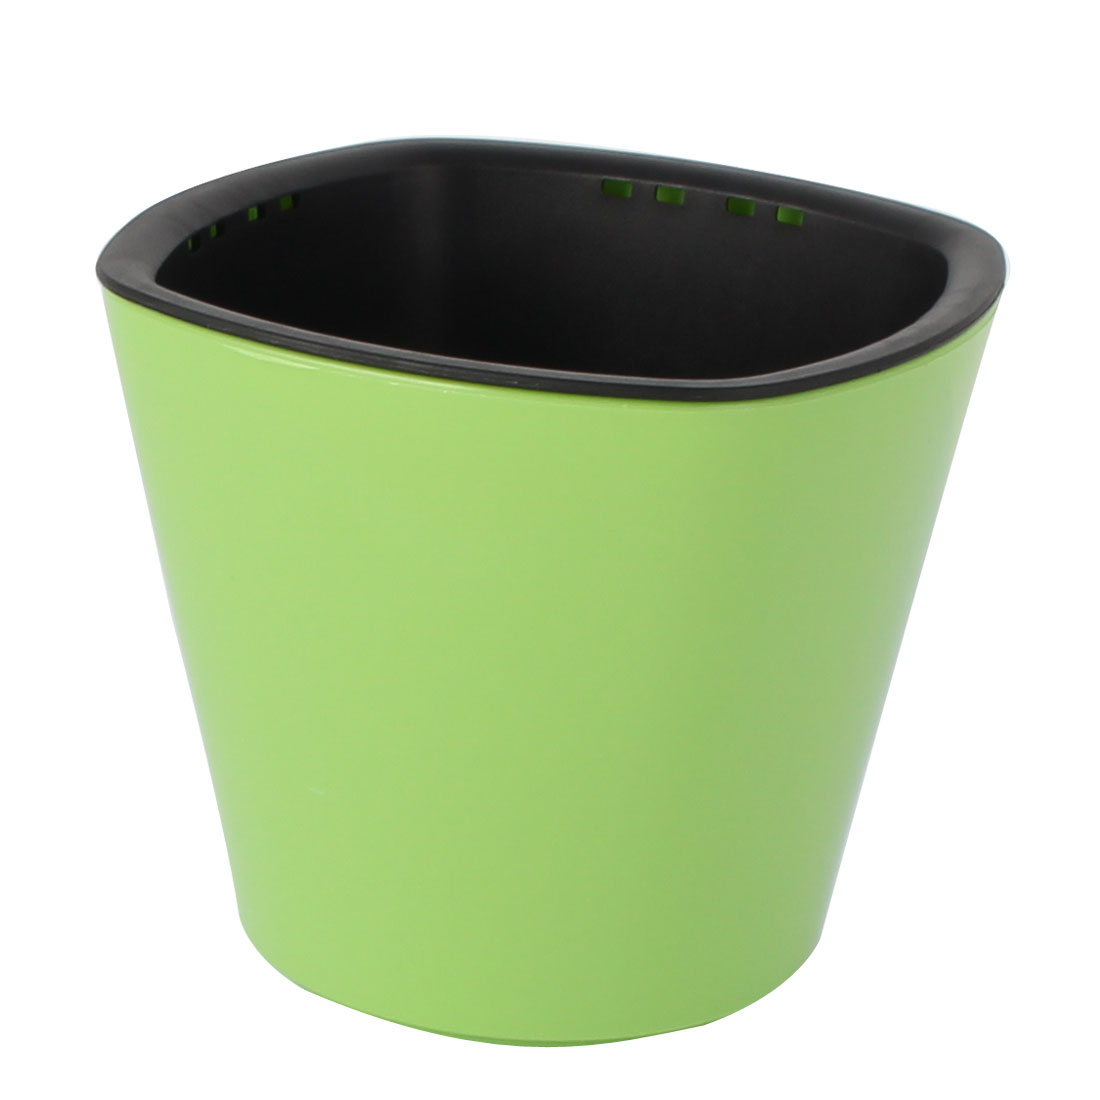 Home Garden Plastic Self Watering Planter Flowerpot Container Pot Apple Green